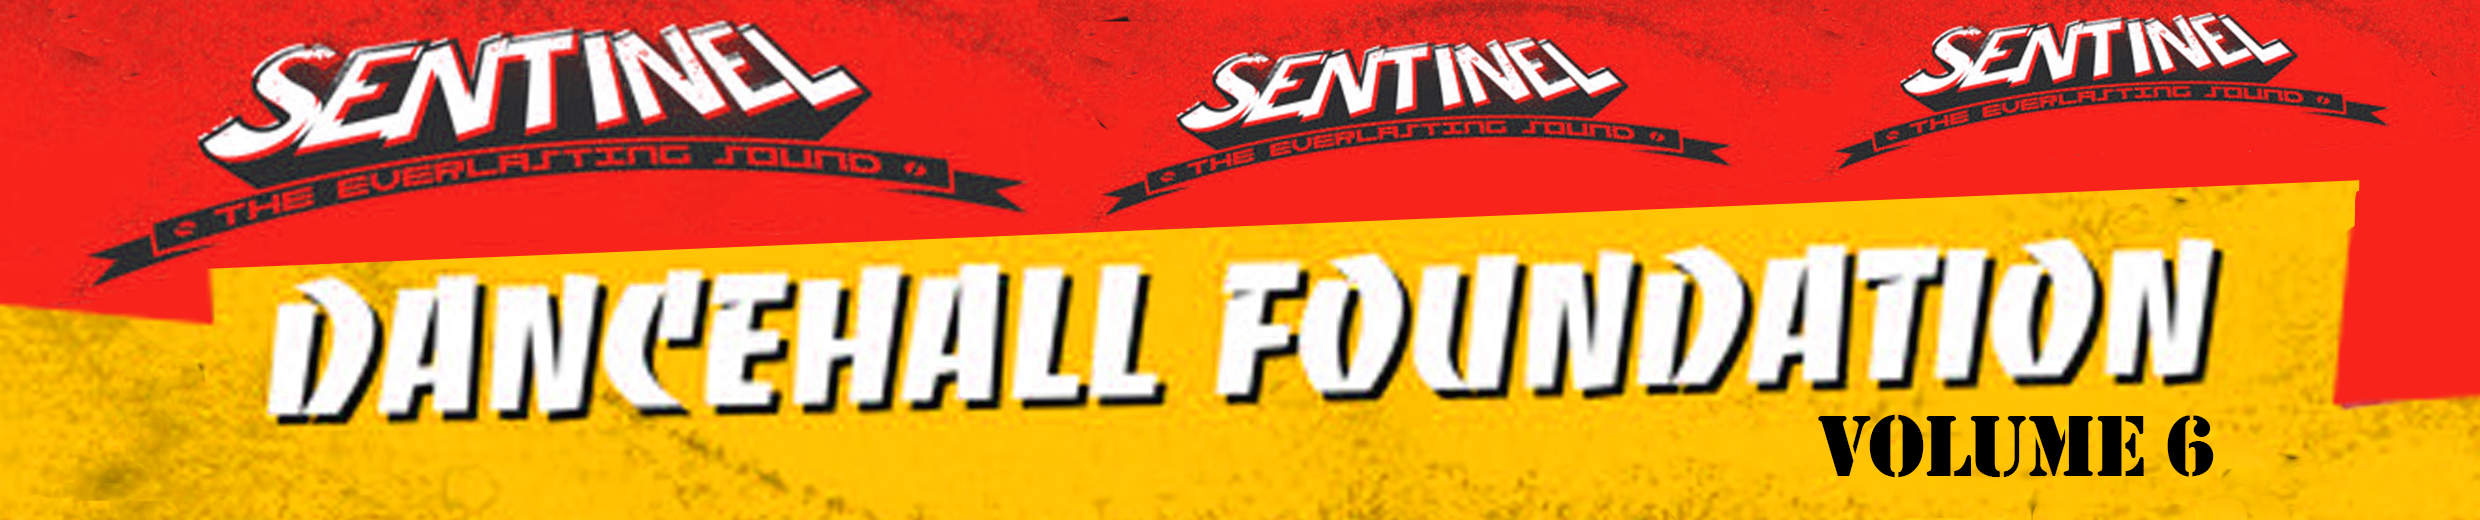 Sentinel Presents Foundation Dancehall Vol 5